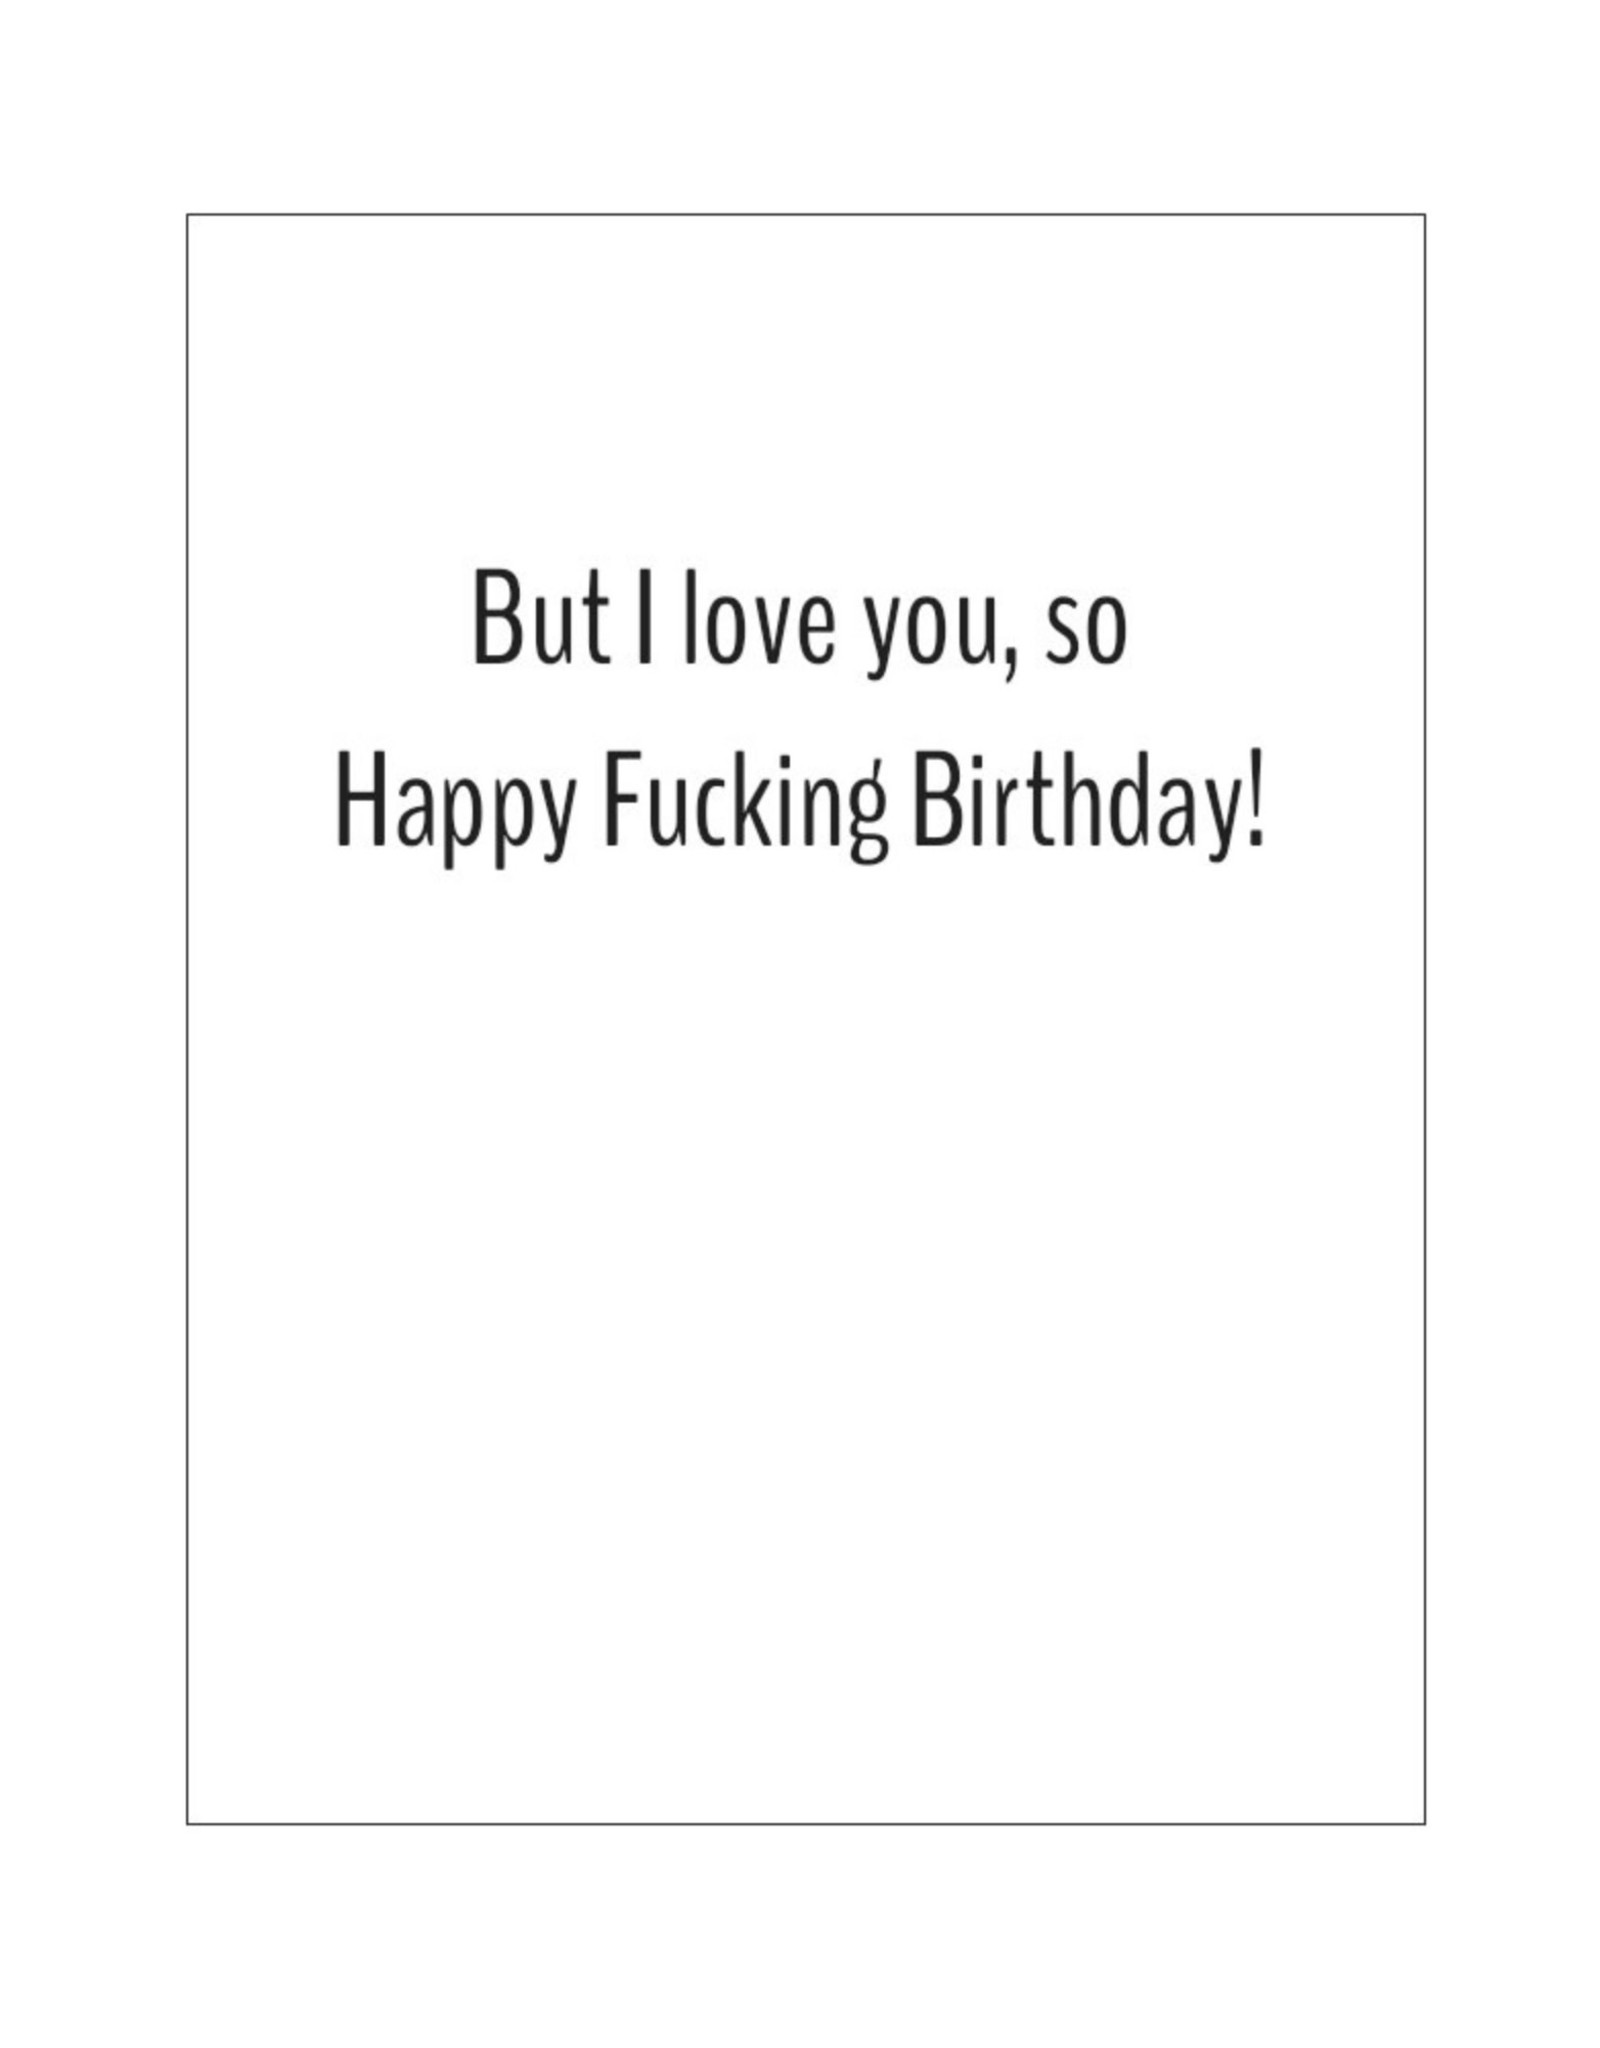 Card #206 - I Usually Have No Fucks Left To Give. Happy Birthday